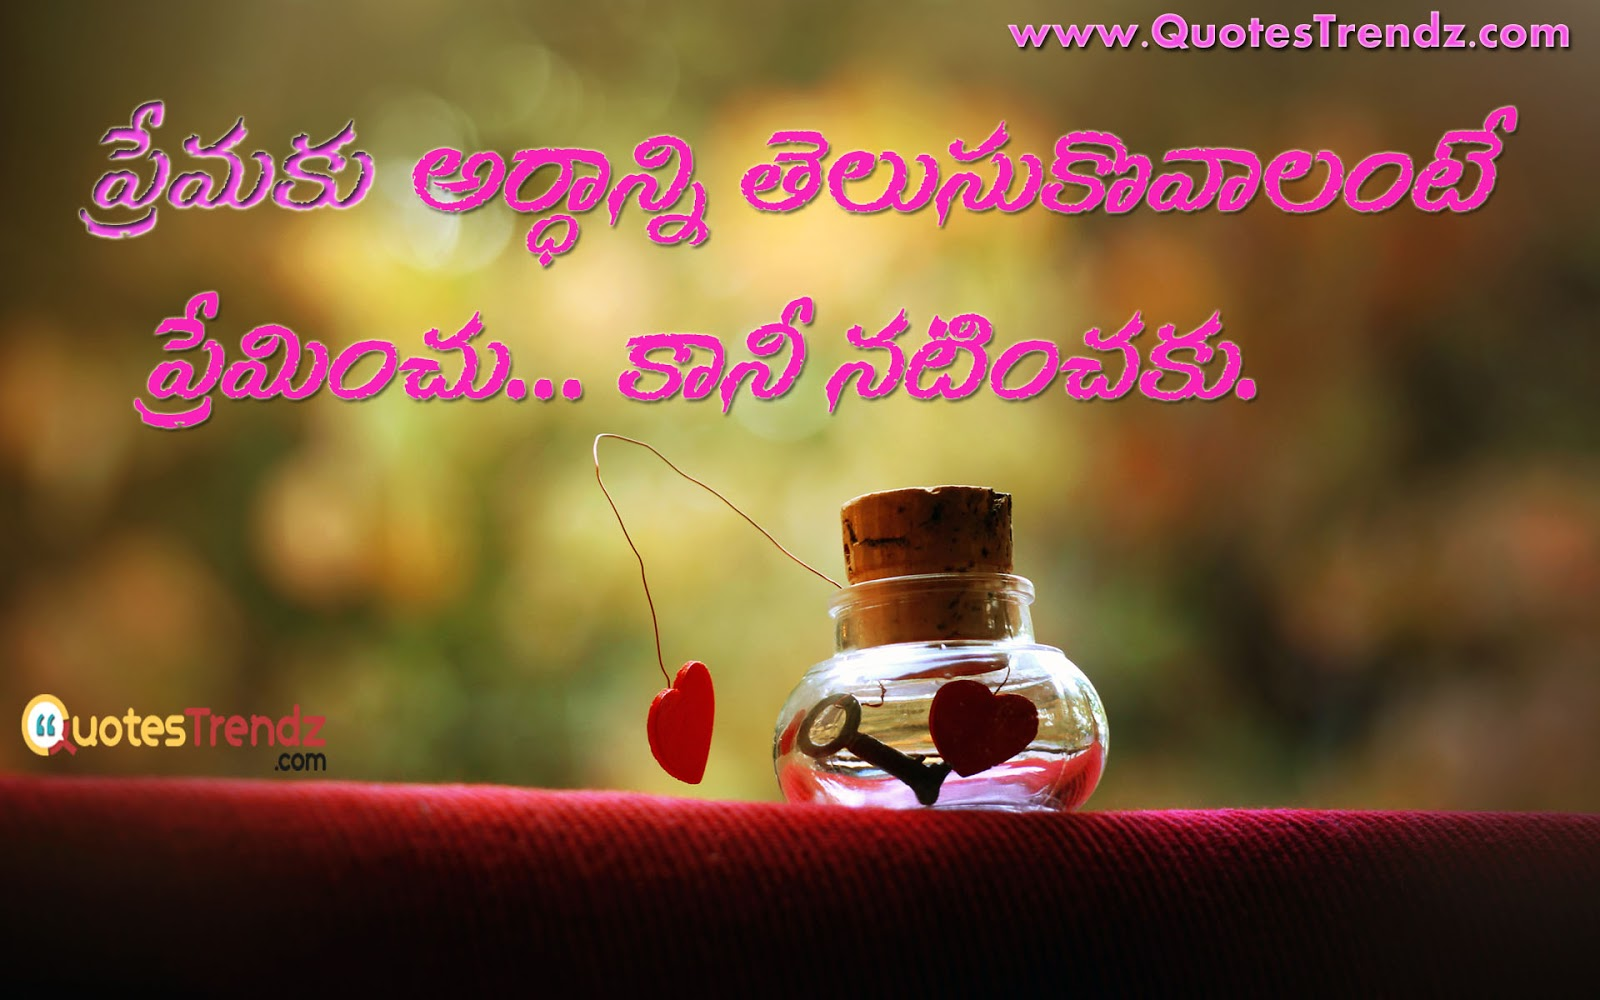 Telugu Love Quotes Inspiration Telugu Love Quotes  Quotestrendz